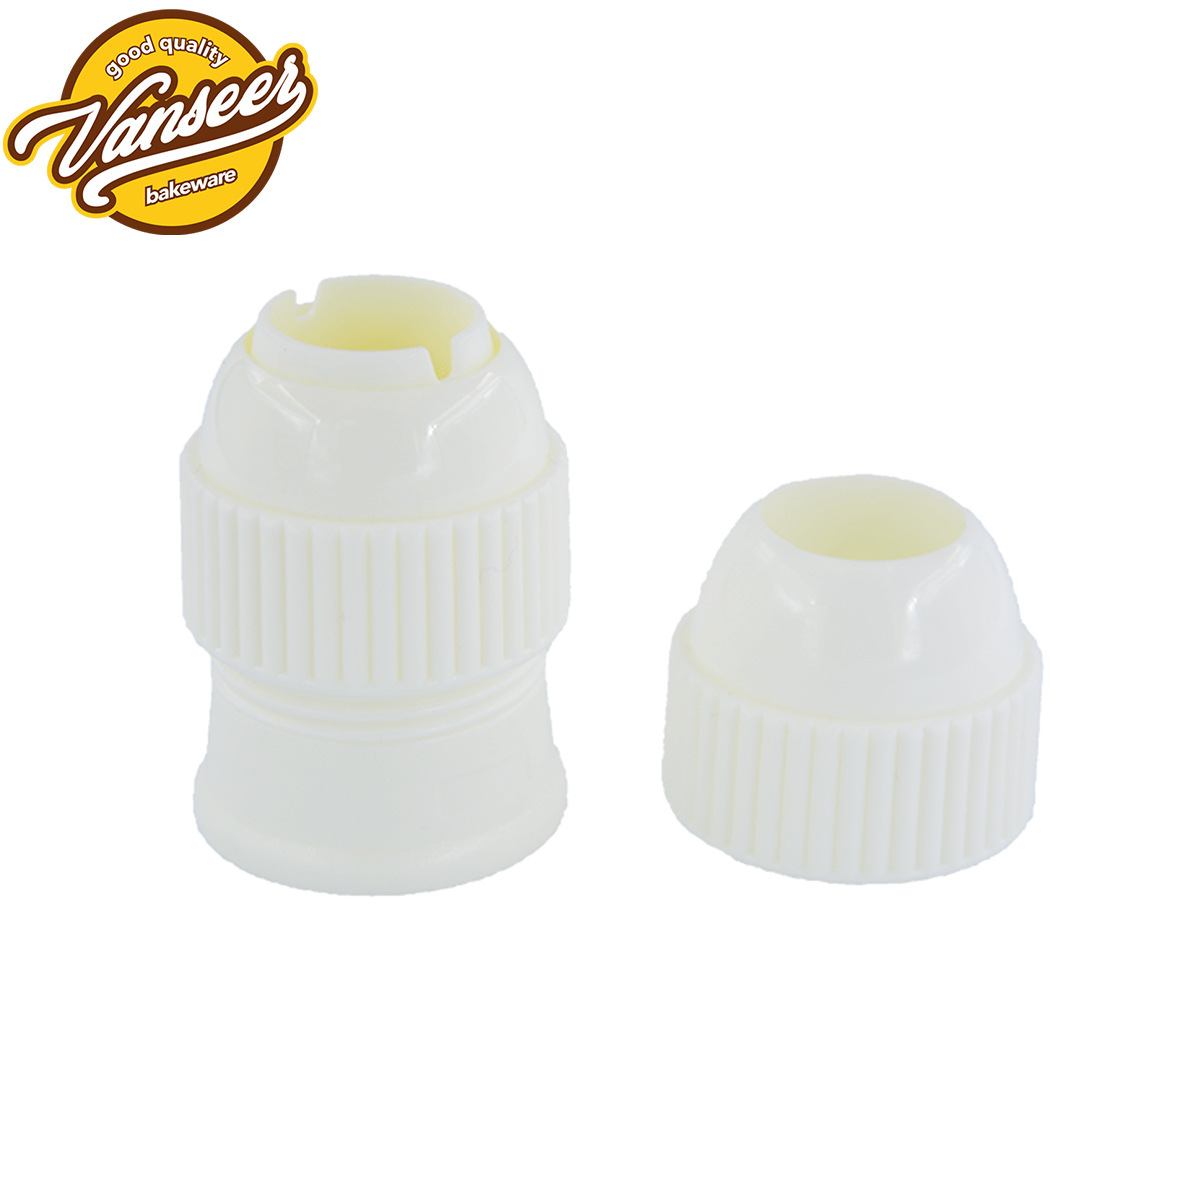 PE Korean Style Pastry Nozzle Converter Nai You Zui Connector Baking Tool Manufacturers Direct Selling